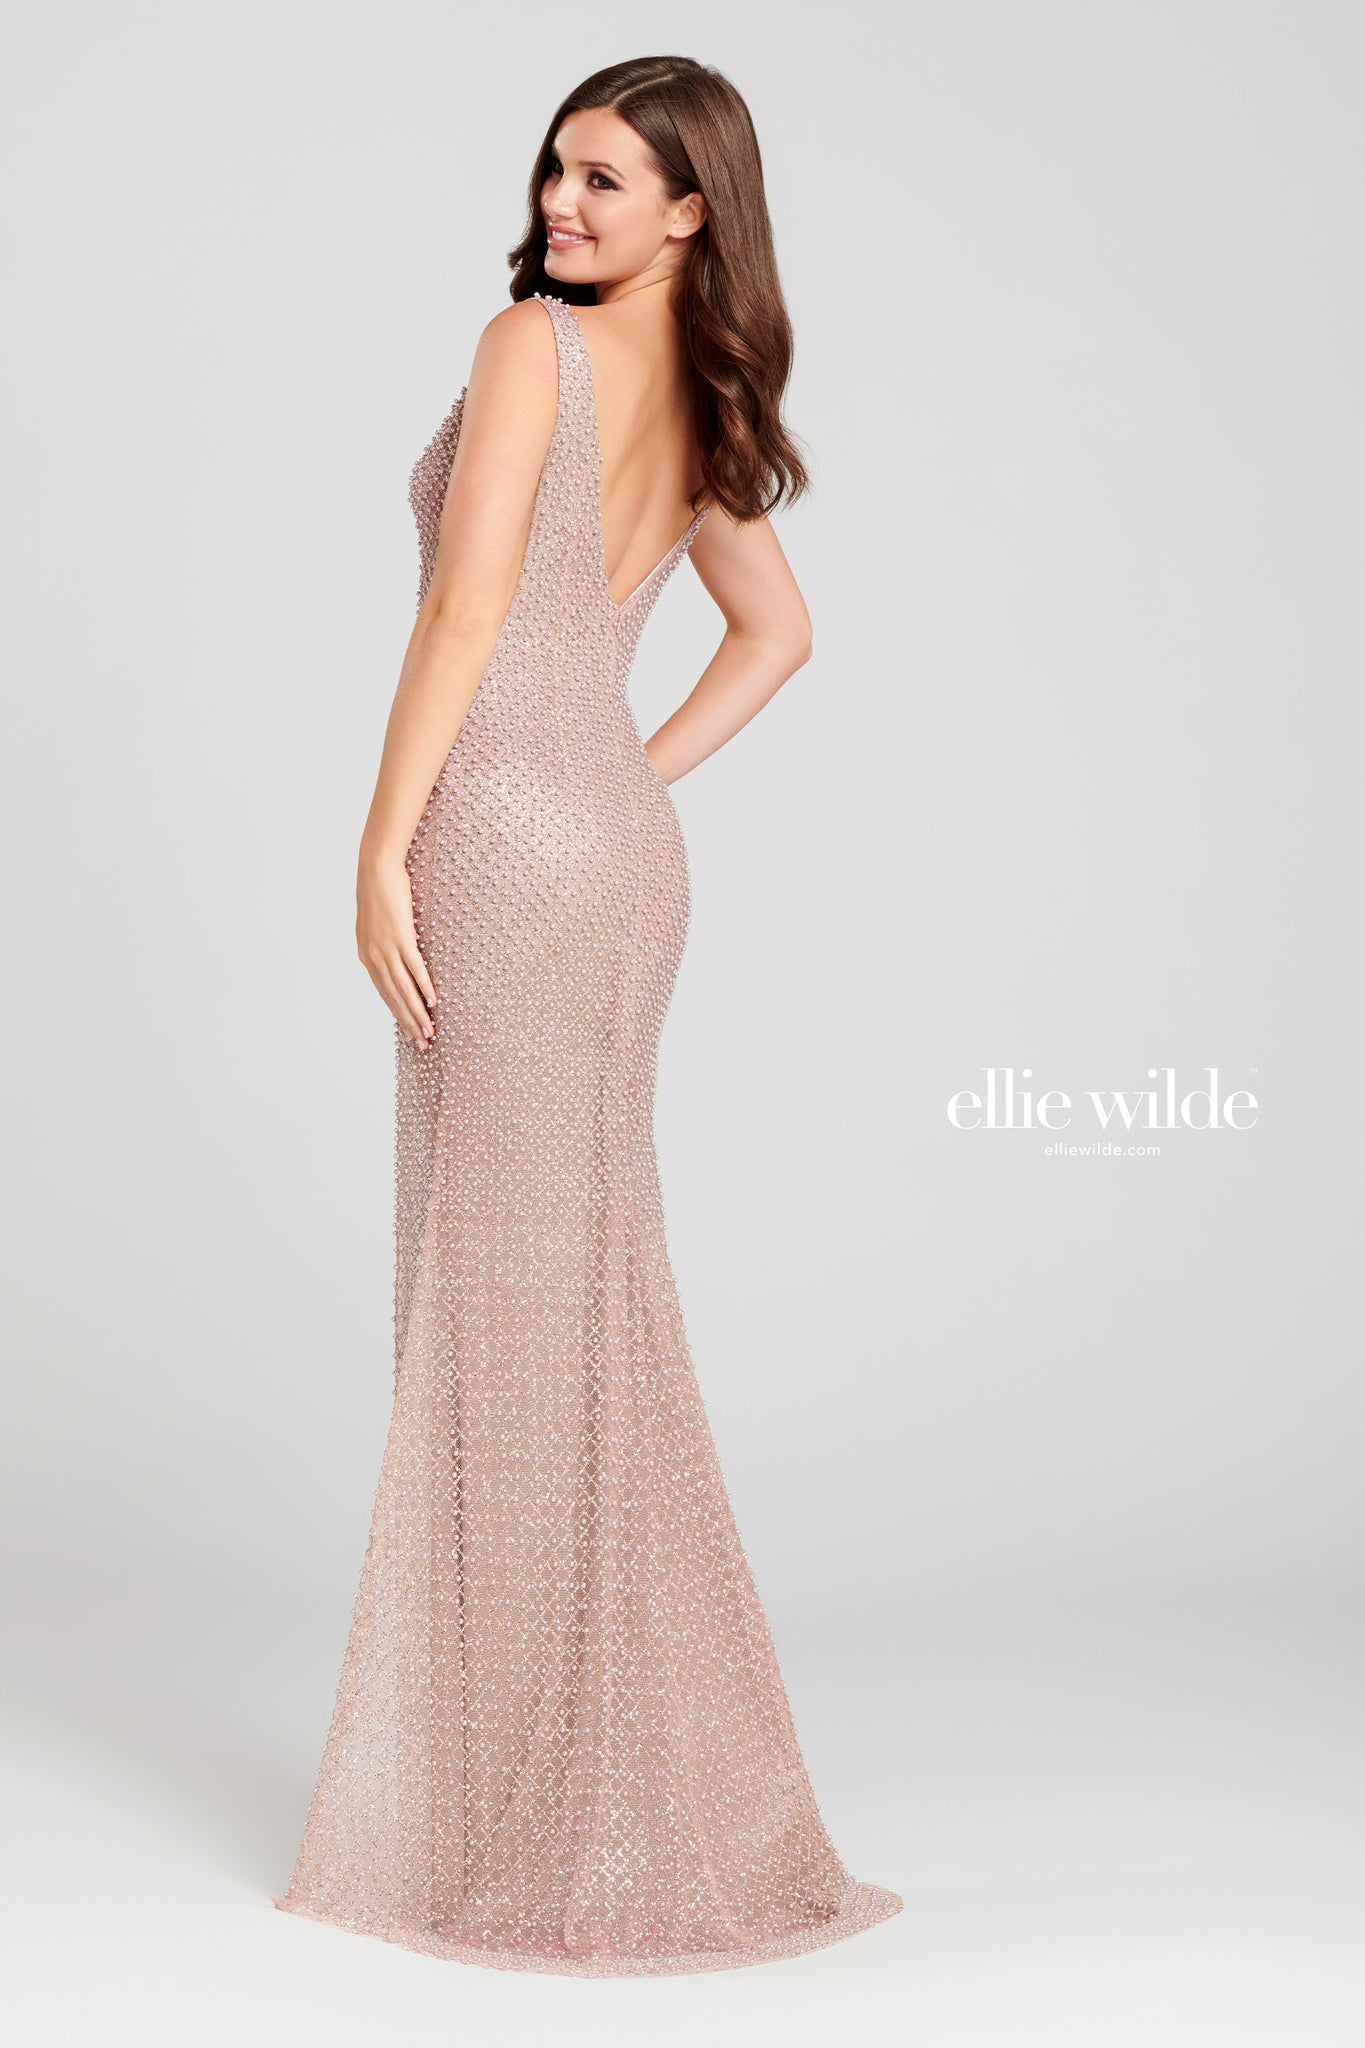 Ellie Wilde Pink Pearl Embellished Evening Gown